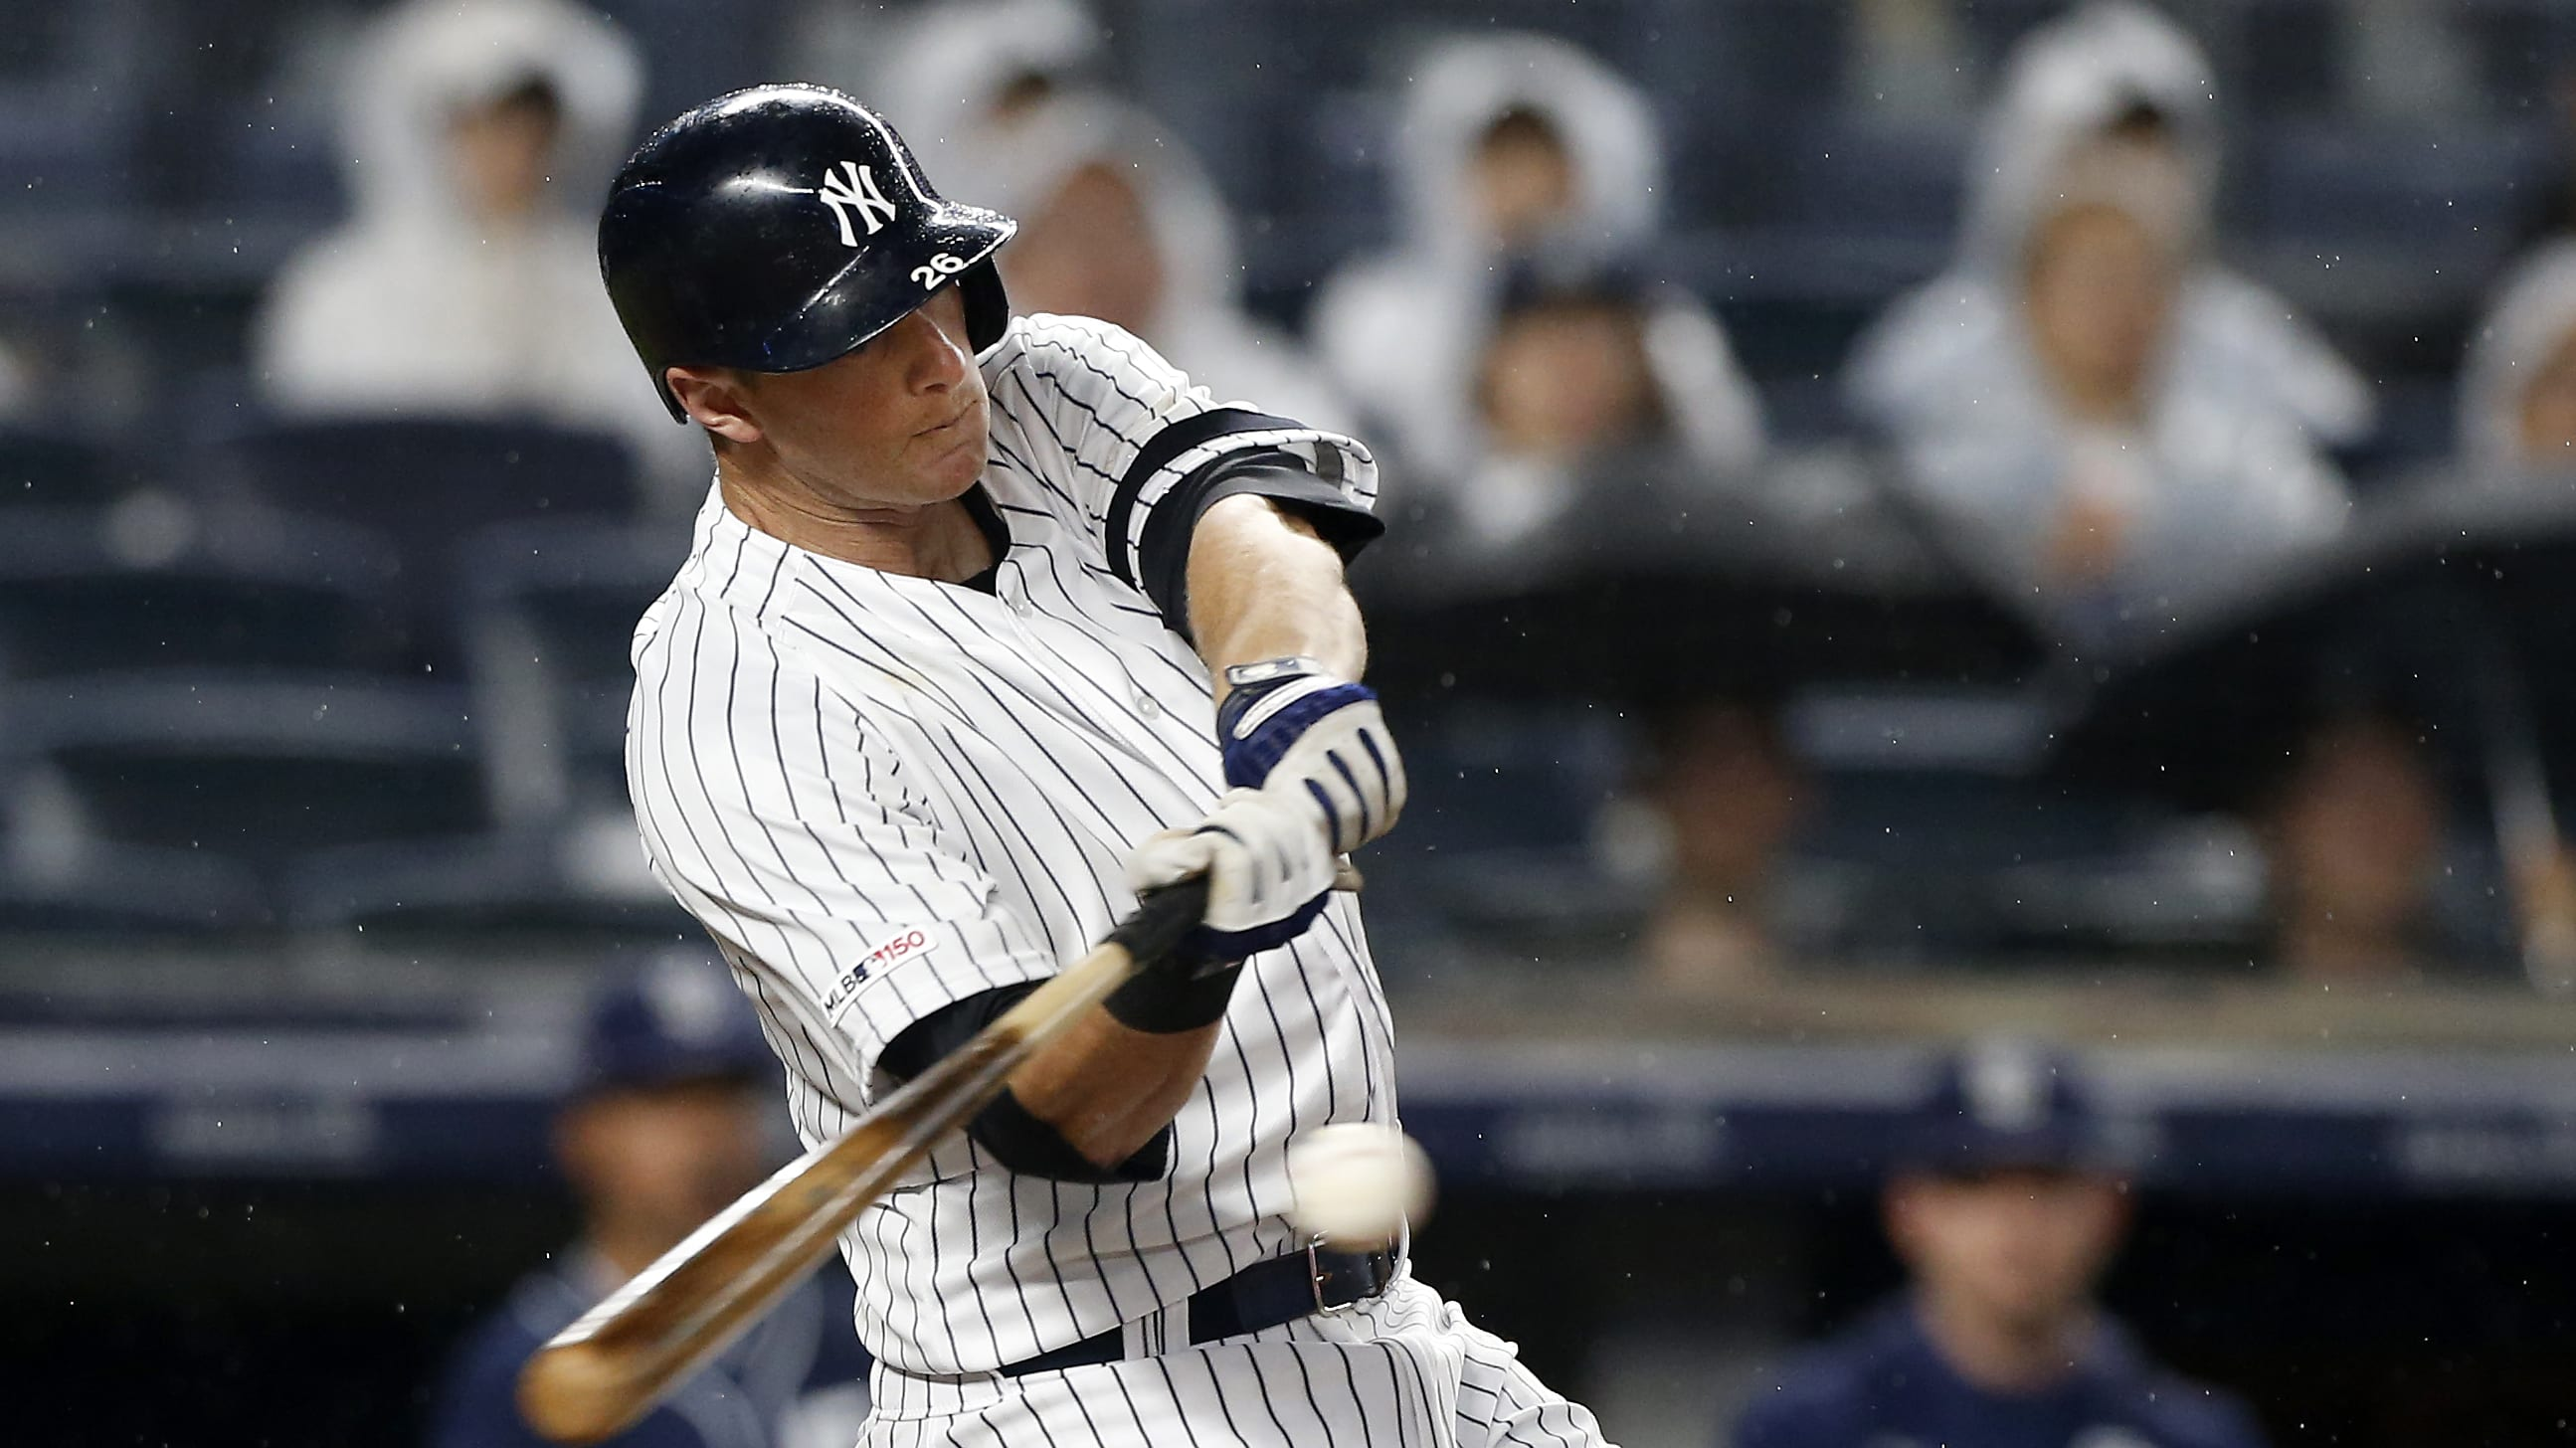 NEW YORK, NEW YORK - MAY 28:   DJ LeMahieu #26 of the New York Yankees hits a two-run single in the seventh inning against the San Diego Padres at Yankee Stadium on May 28, 2019 in New York City. (Photo by Jim McIsaac/Getty Images)